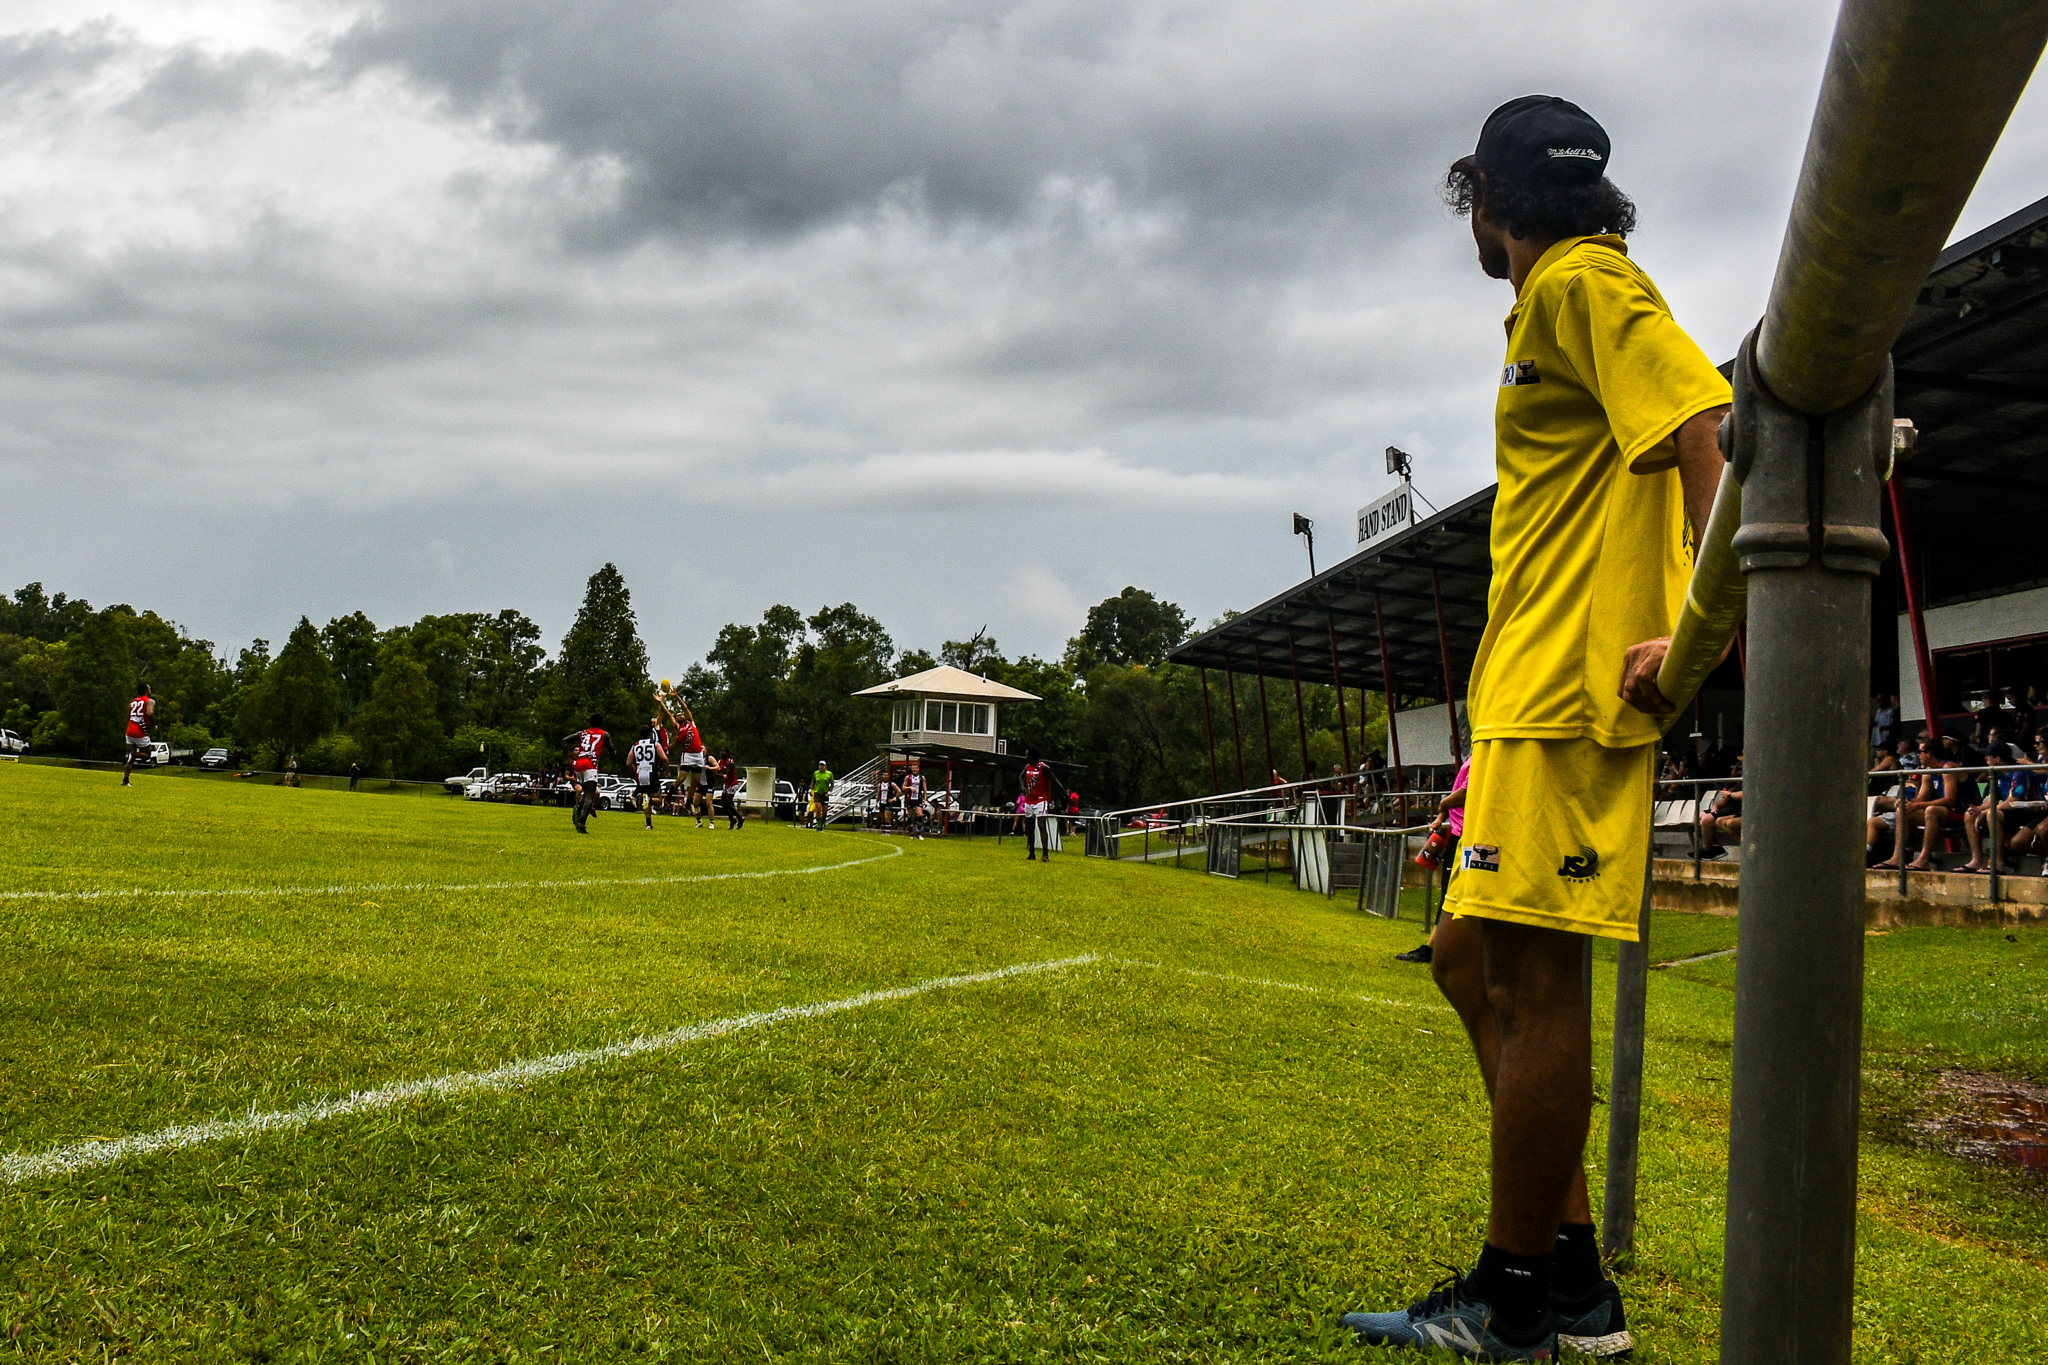 Cyril Rioli Jnr – a four-time AFL premiership player with Hawthorn – watches on from the sidelines. Rioli started running for the Tiwi team in round 13. He retired from the AFL in July 2018 so he could return to the Top End and be closer to his family. Tiwi Bombers v Southern Crocs, NTFL round 14, January 19, 2019